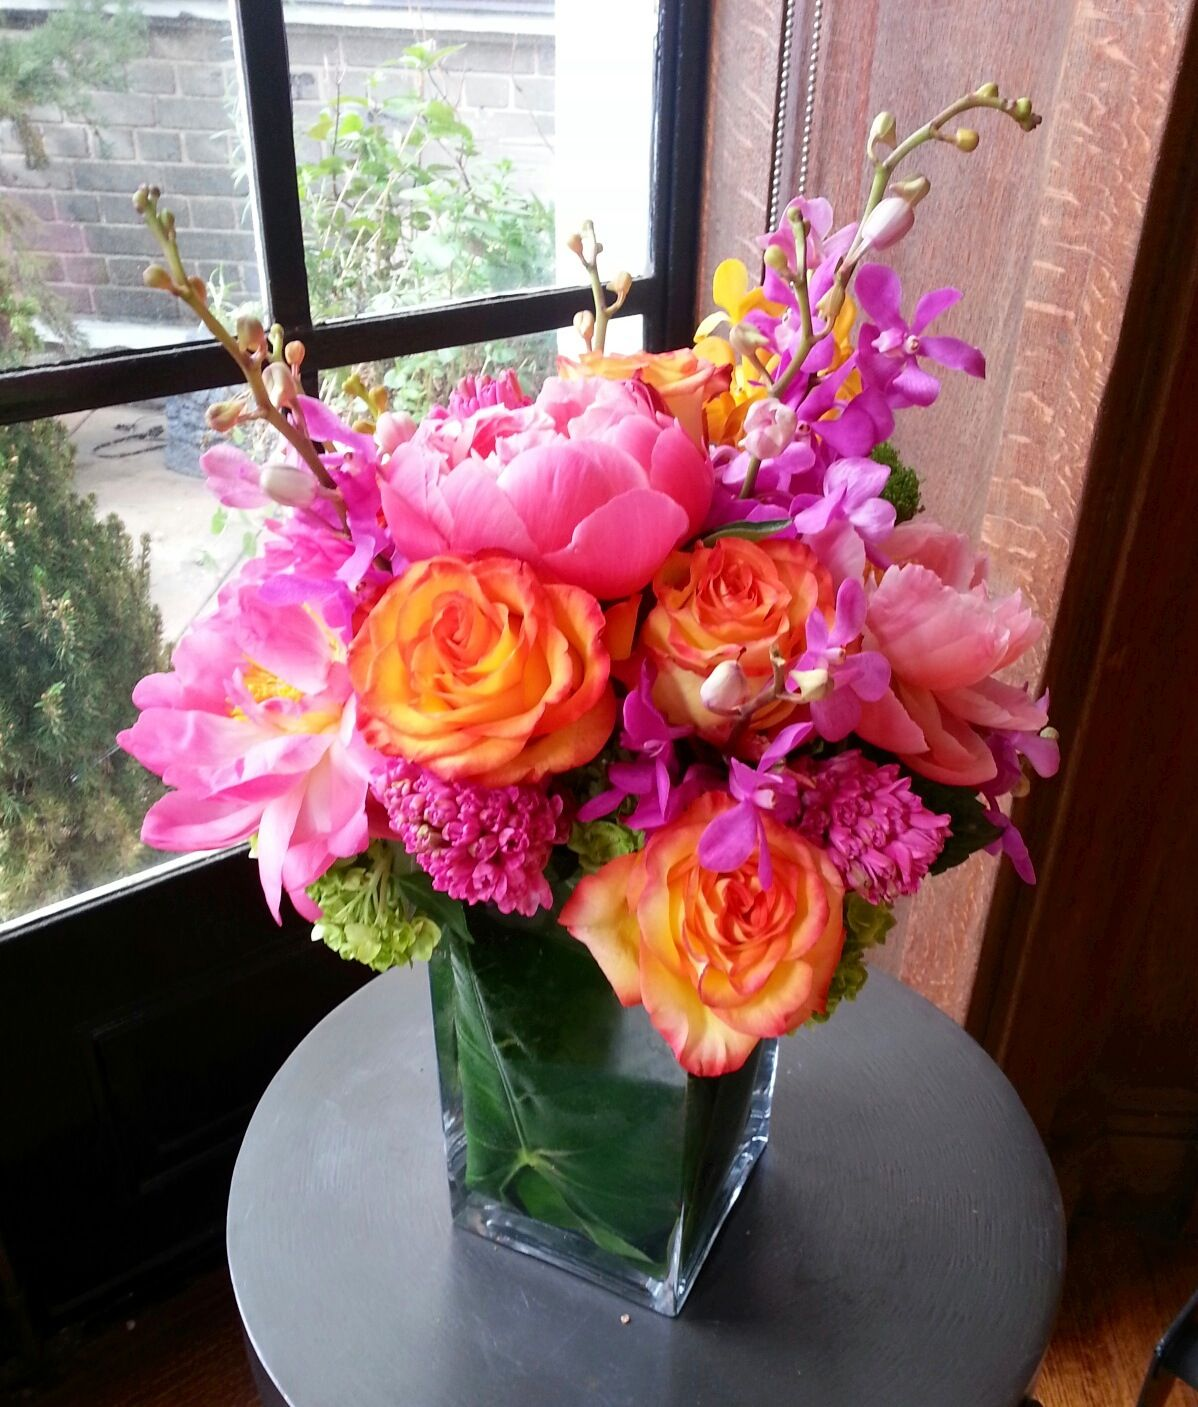 Bright Colors Side Table Arrangement Hot Pink Peonies Orange Roses Hyacinth Green Hydrangea Yellow And Orchids